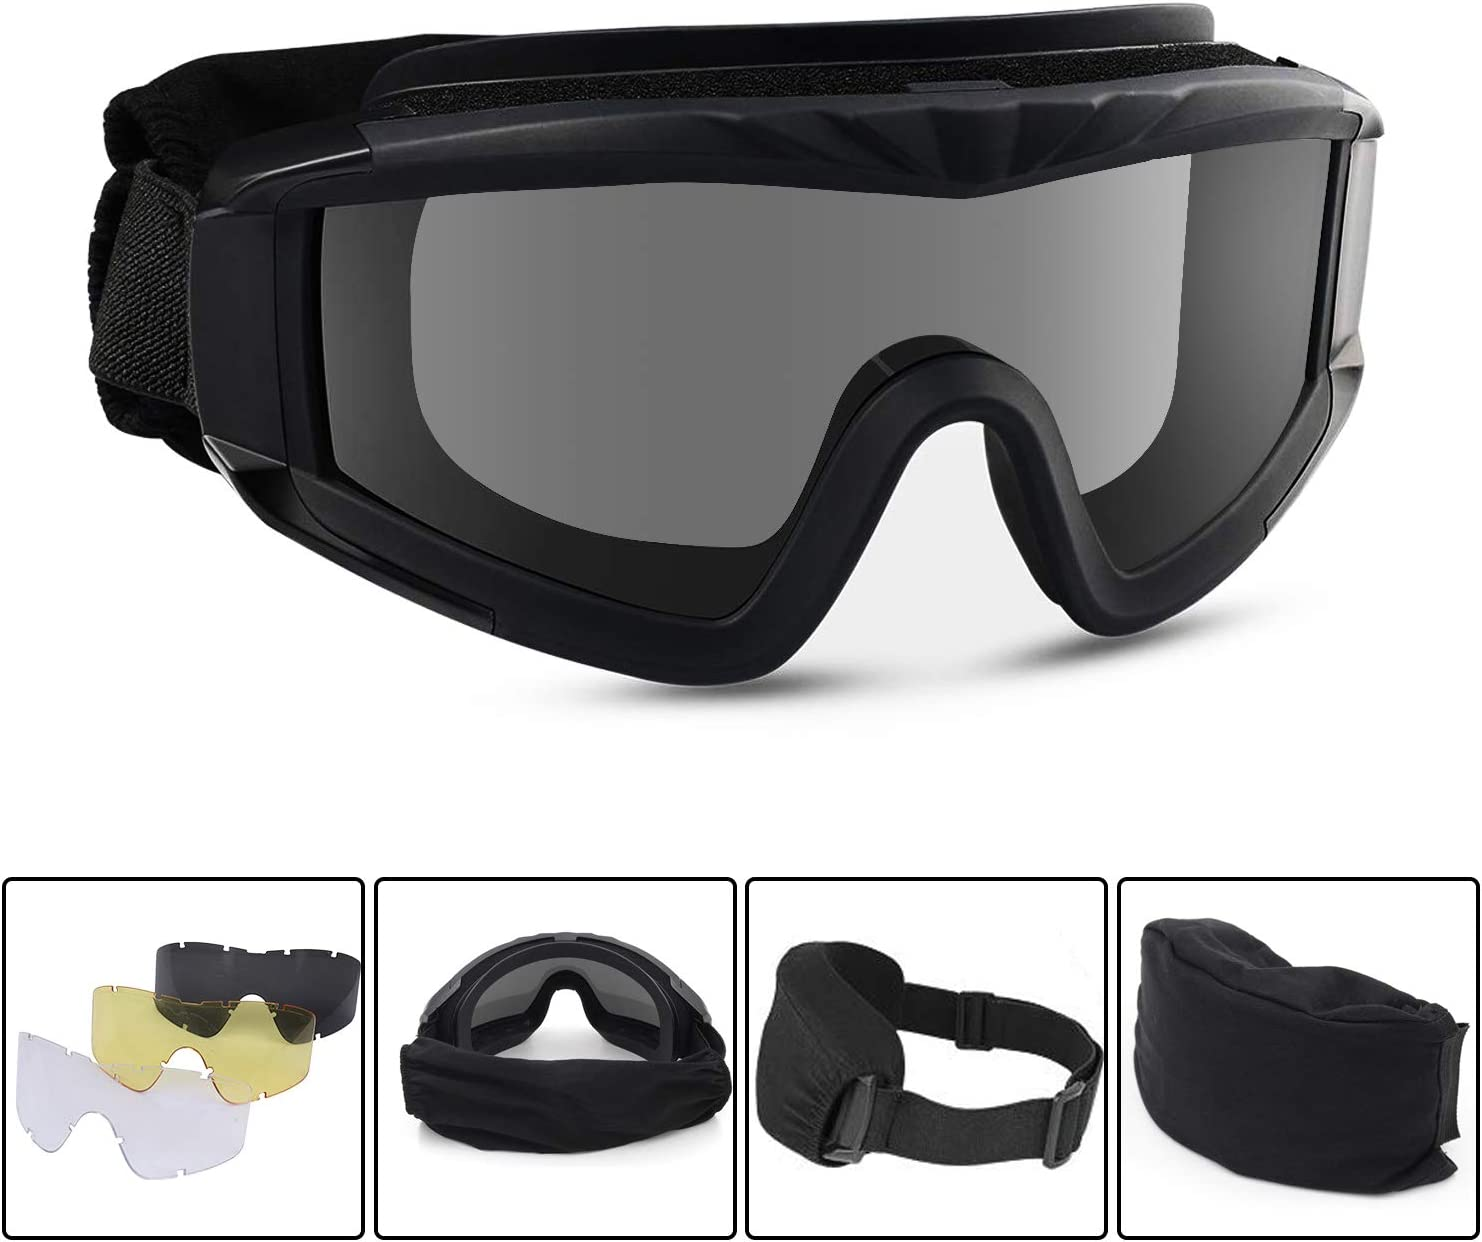 Freehawk Tactical Safety Goggles Airsoft Goggles Military Goggles Motorcycle Goggles with 3 Interchangeable Multi Lens for Shooting/Paintbal/Hiking/Skiing/Riding